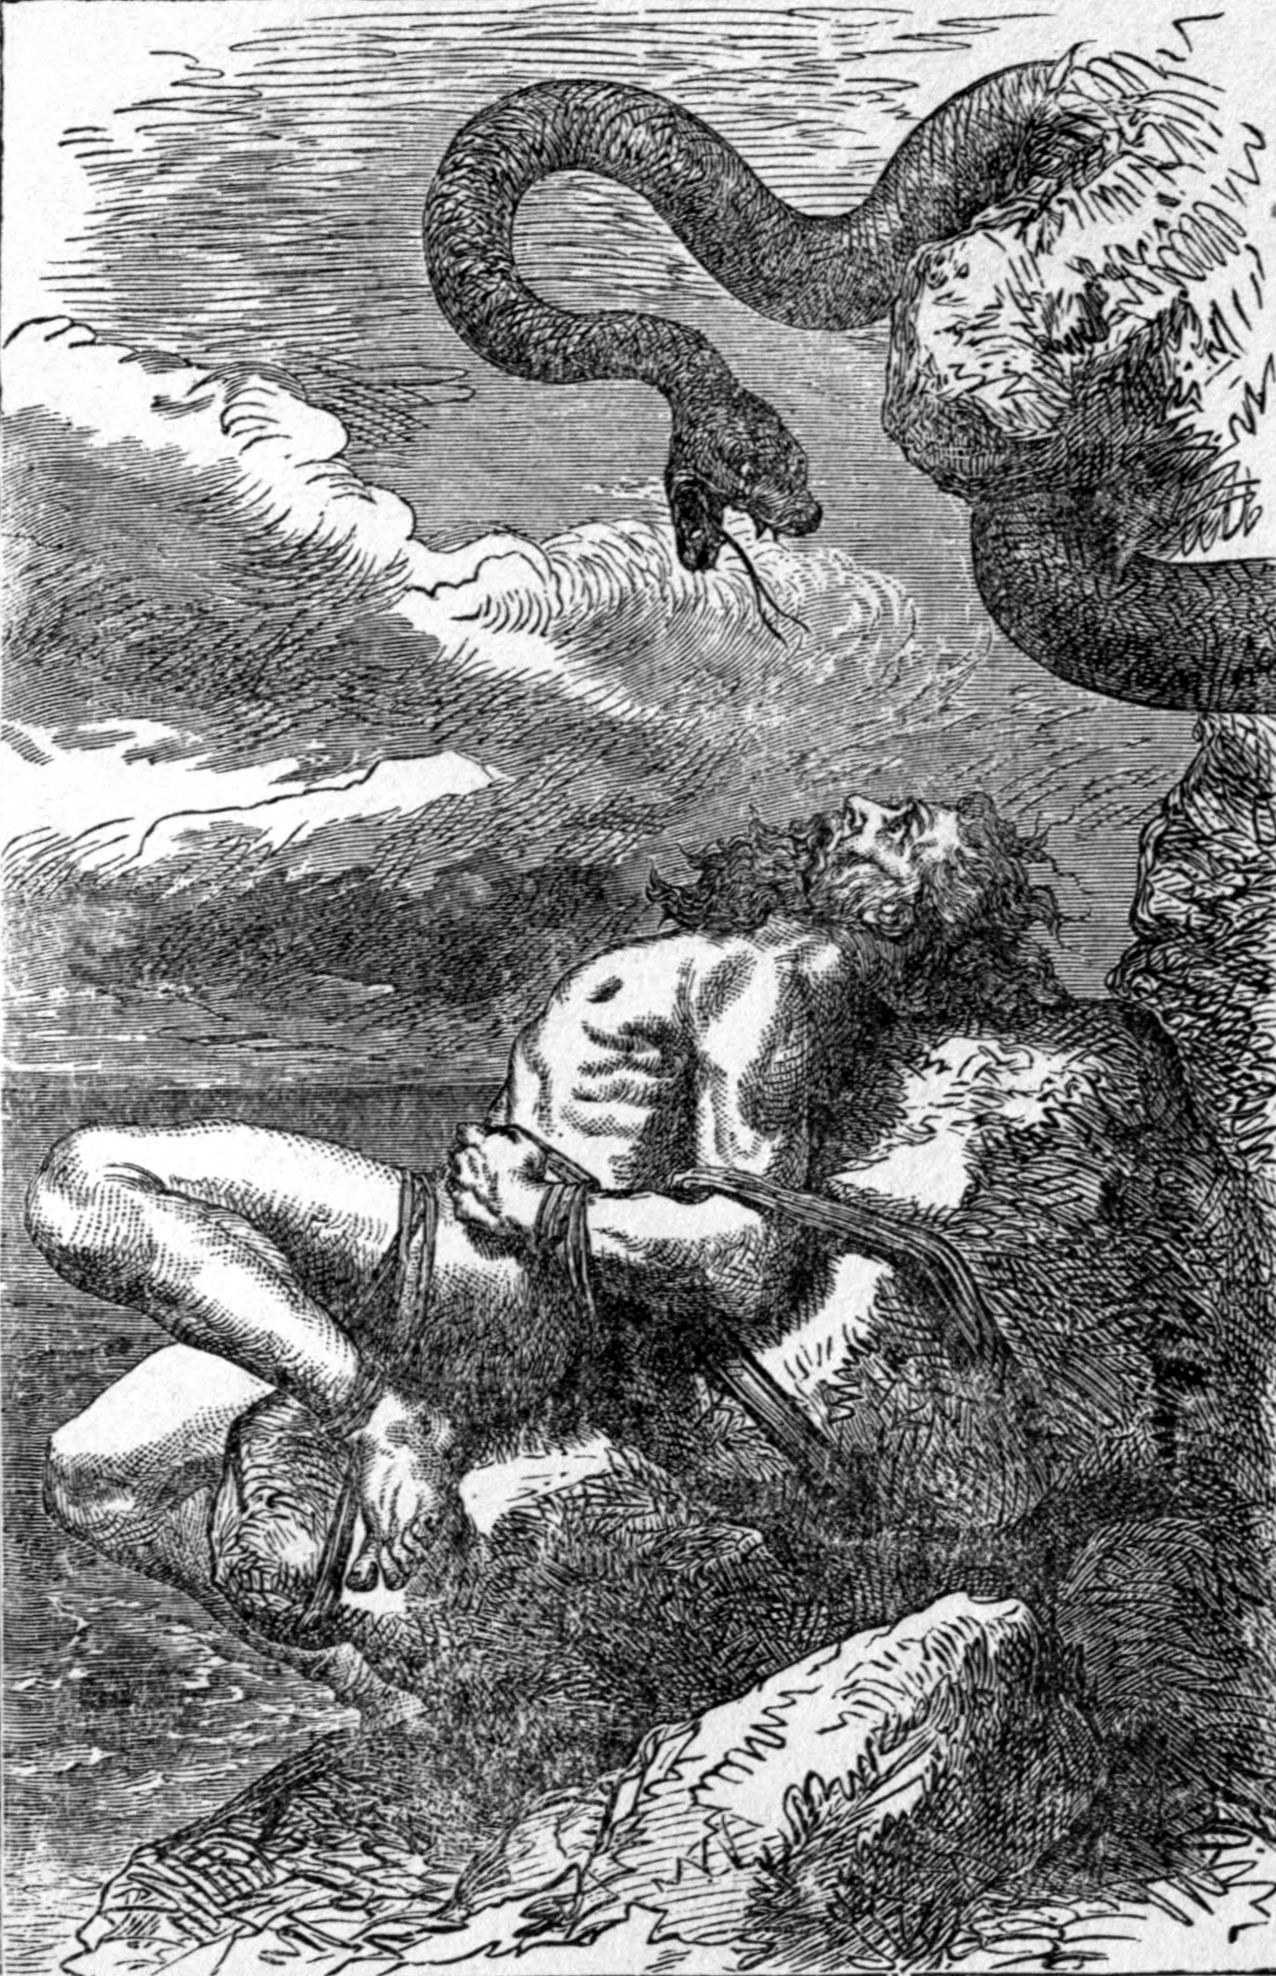 The punishment of Loki (Image: Louis Huard / Wikimedia Commons)